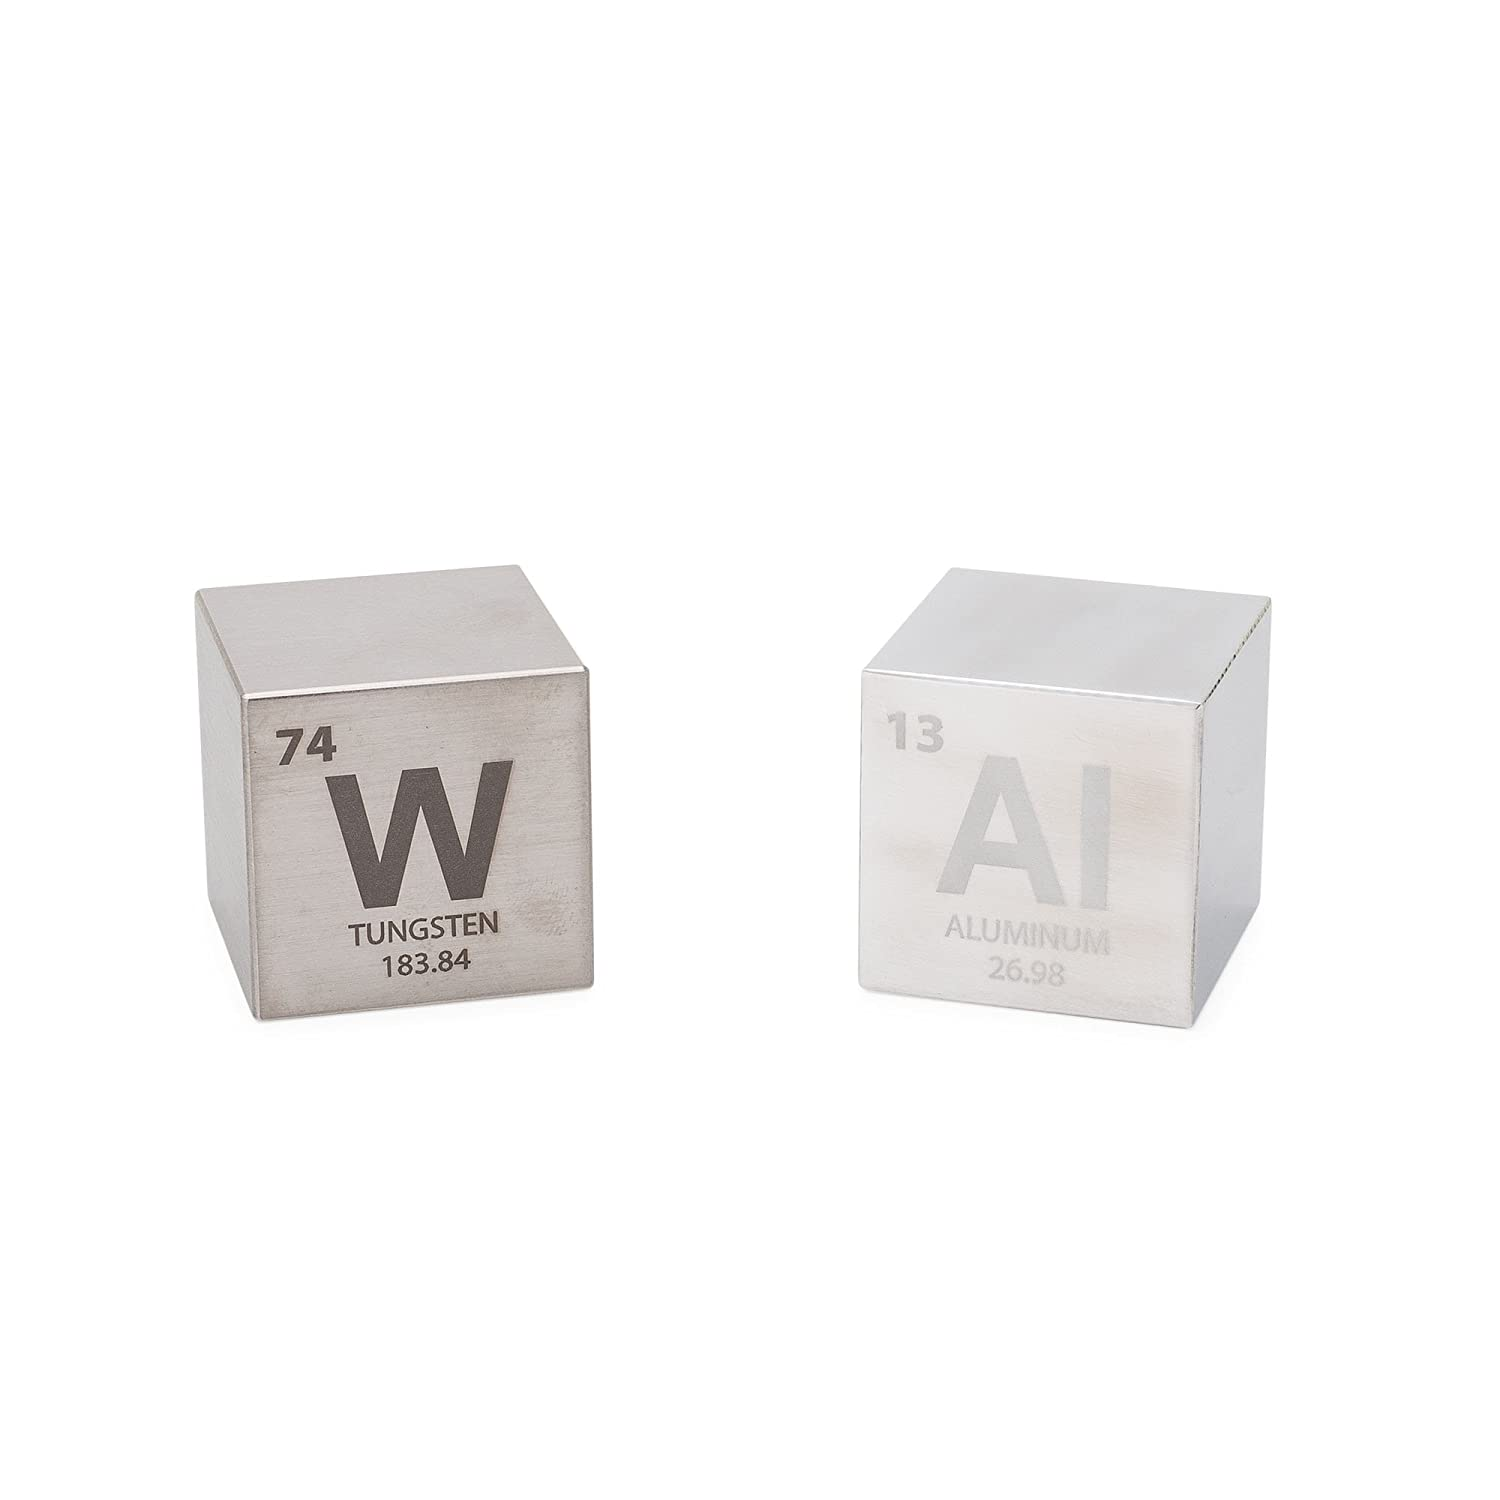 Tungsten Aluminum 15 Cube Set Engraved Elemental Symbol